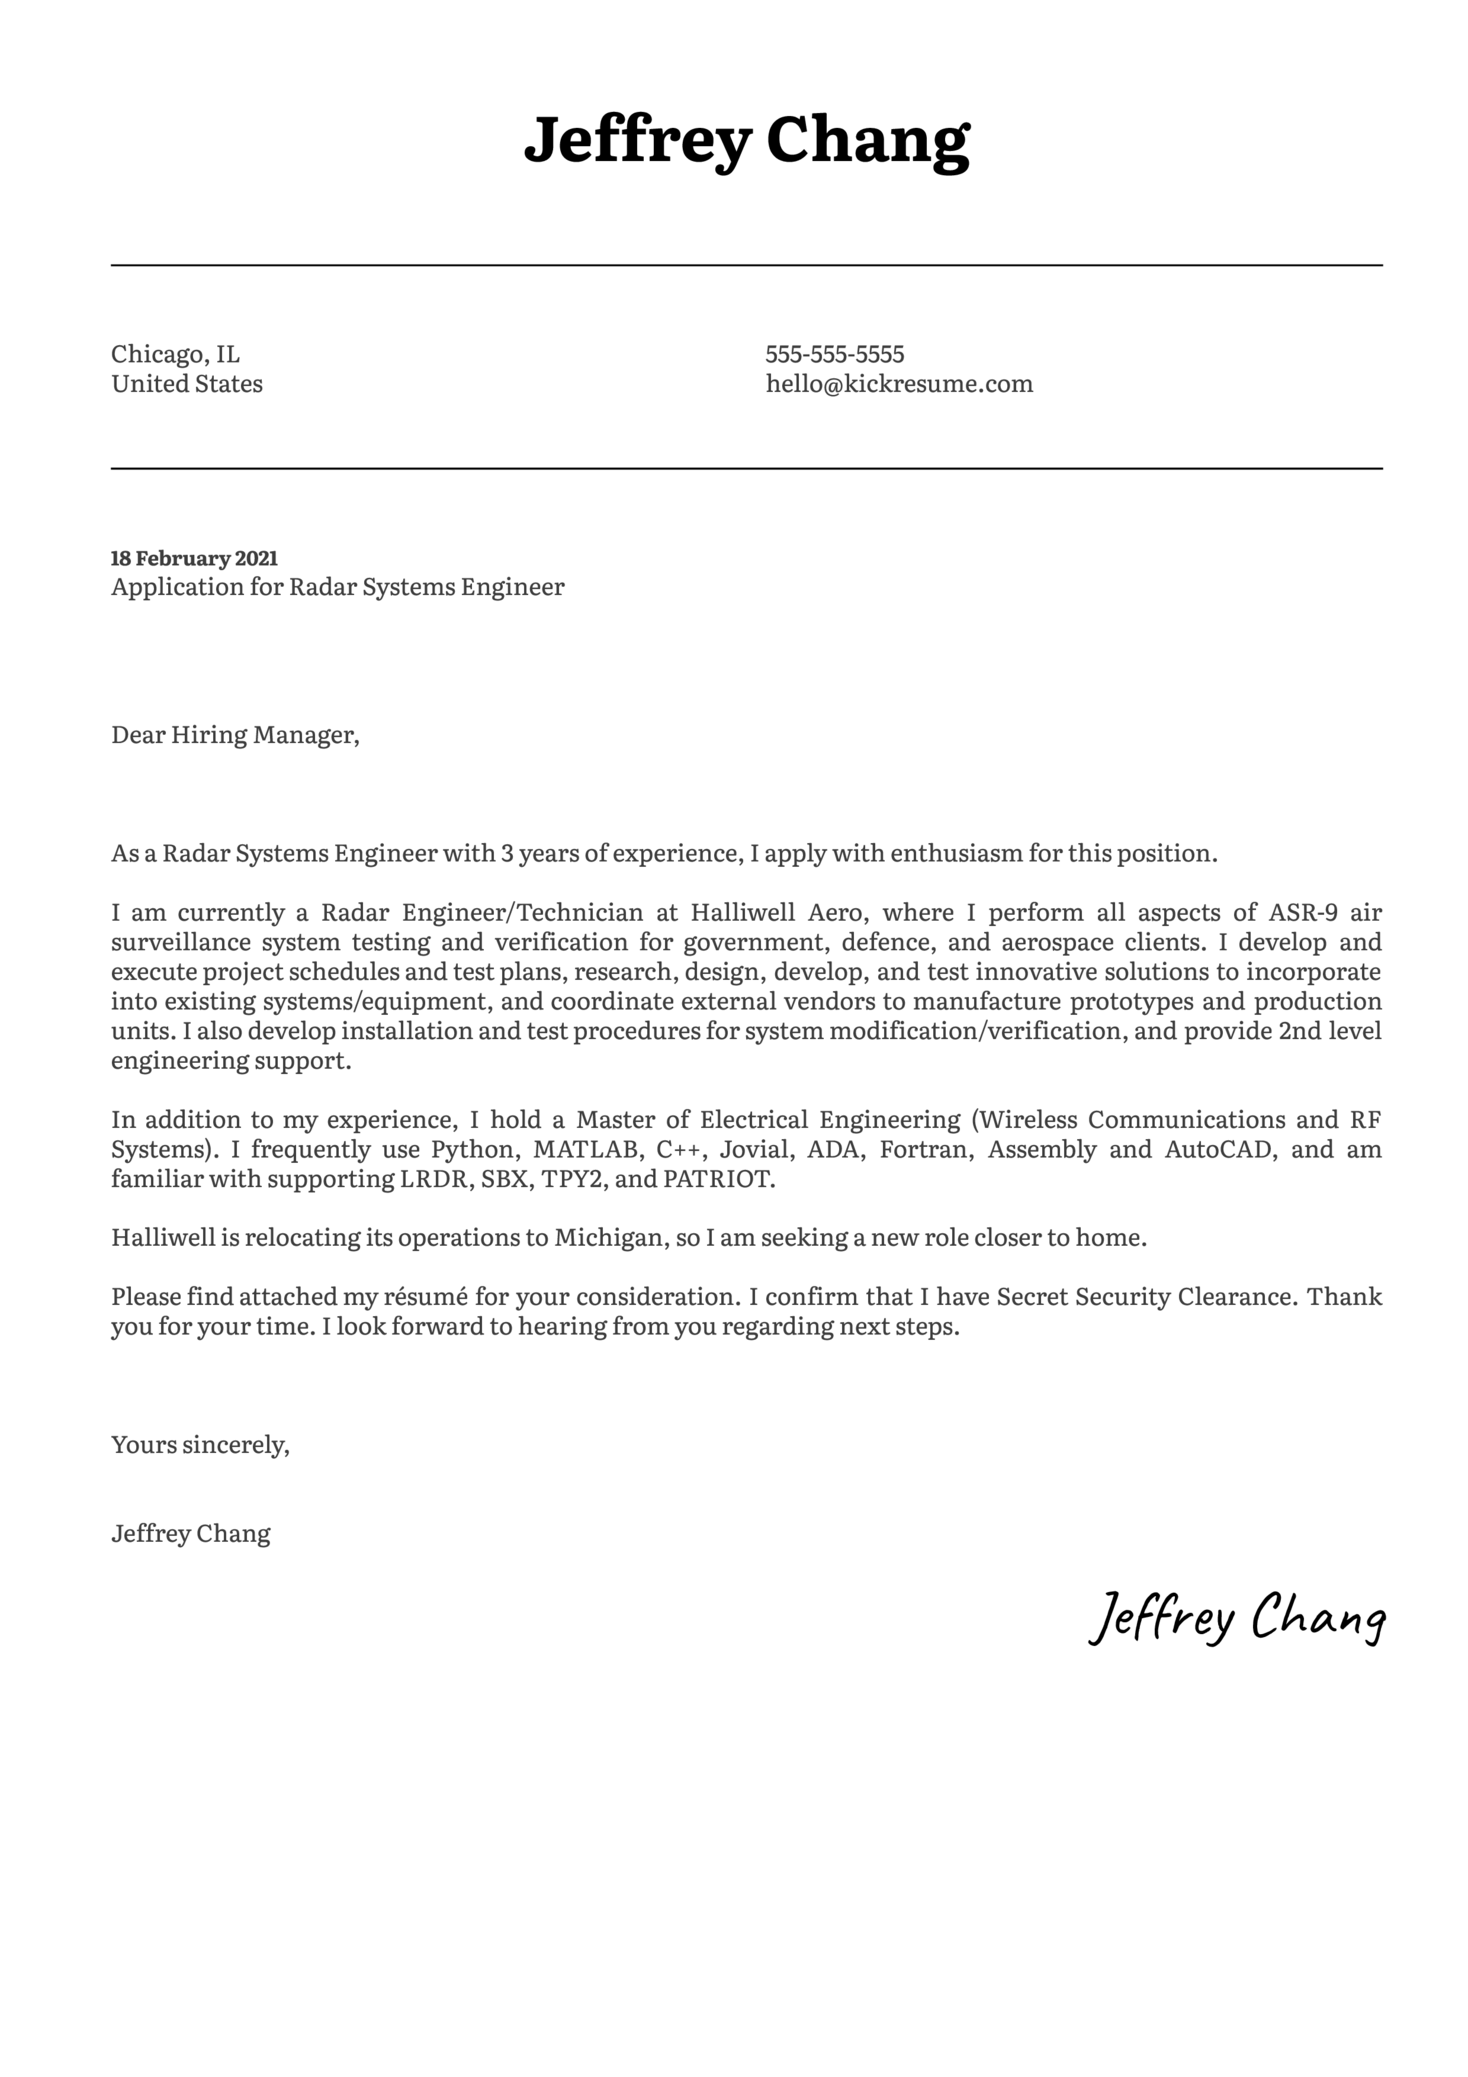 Radar Systems Engineer Cover Letter Template